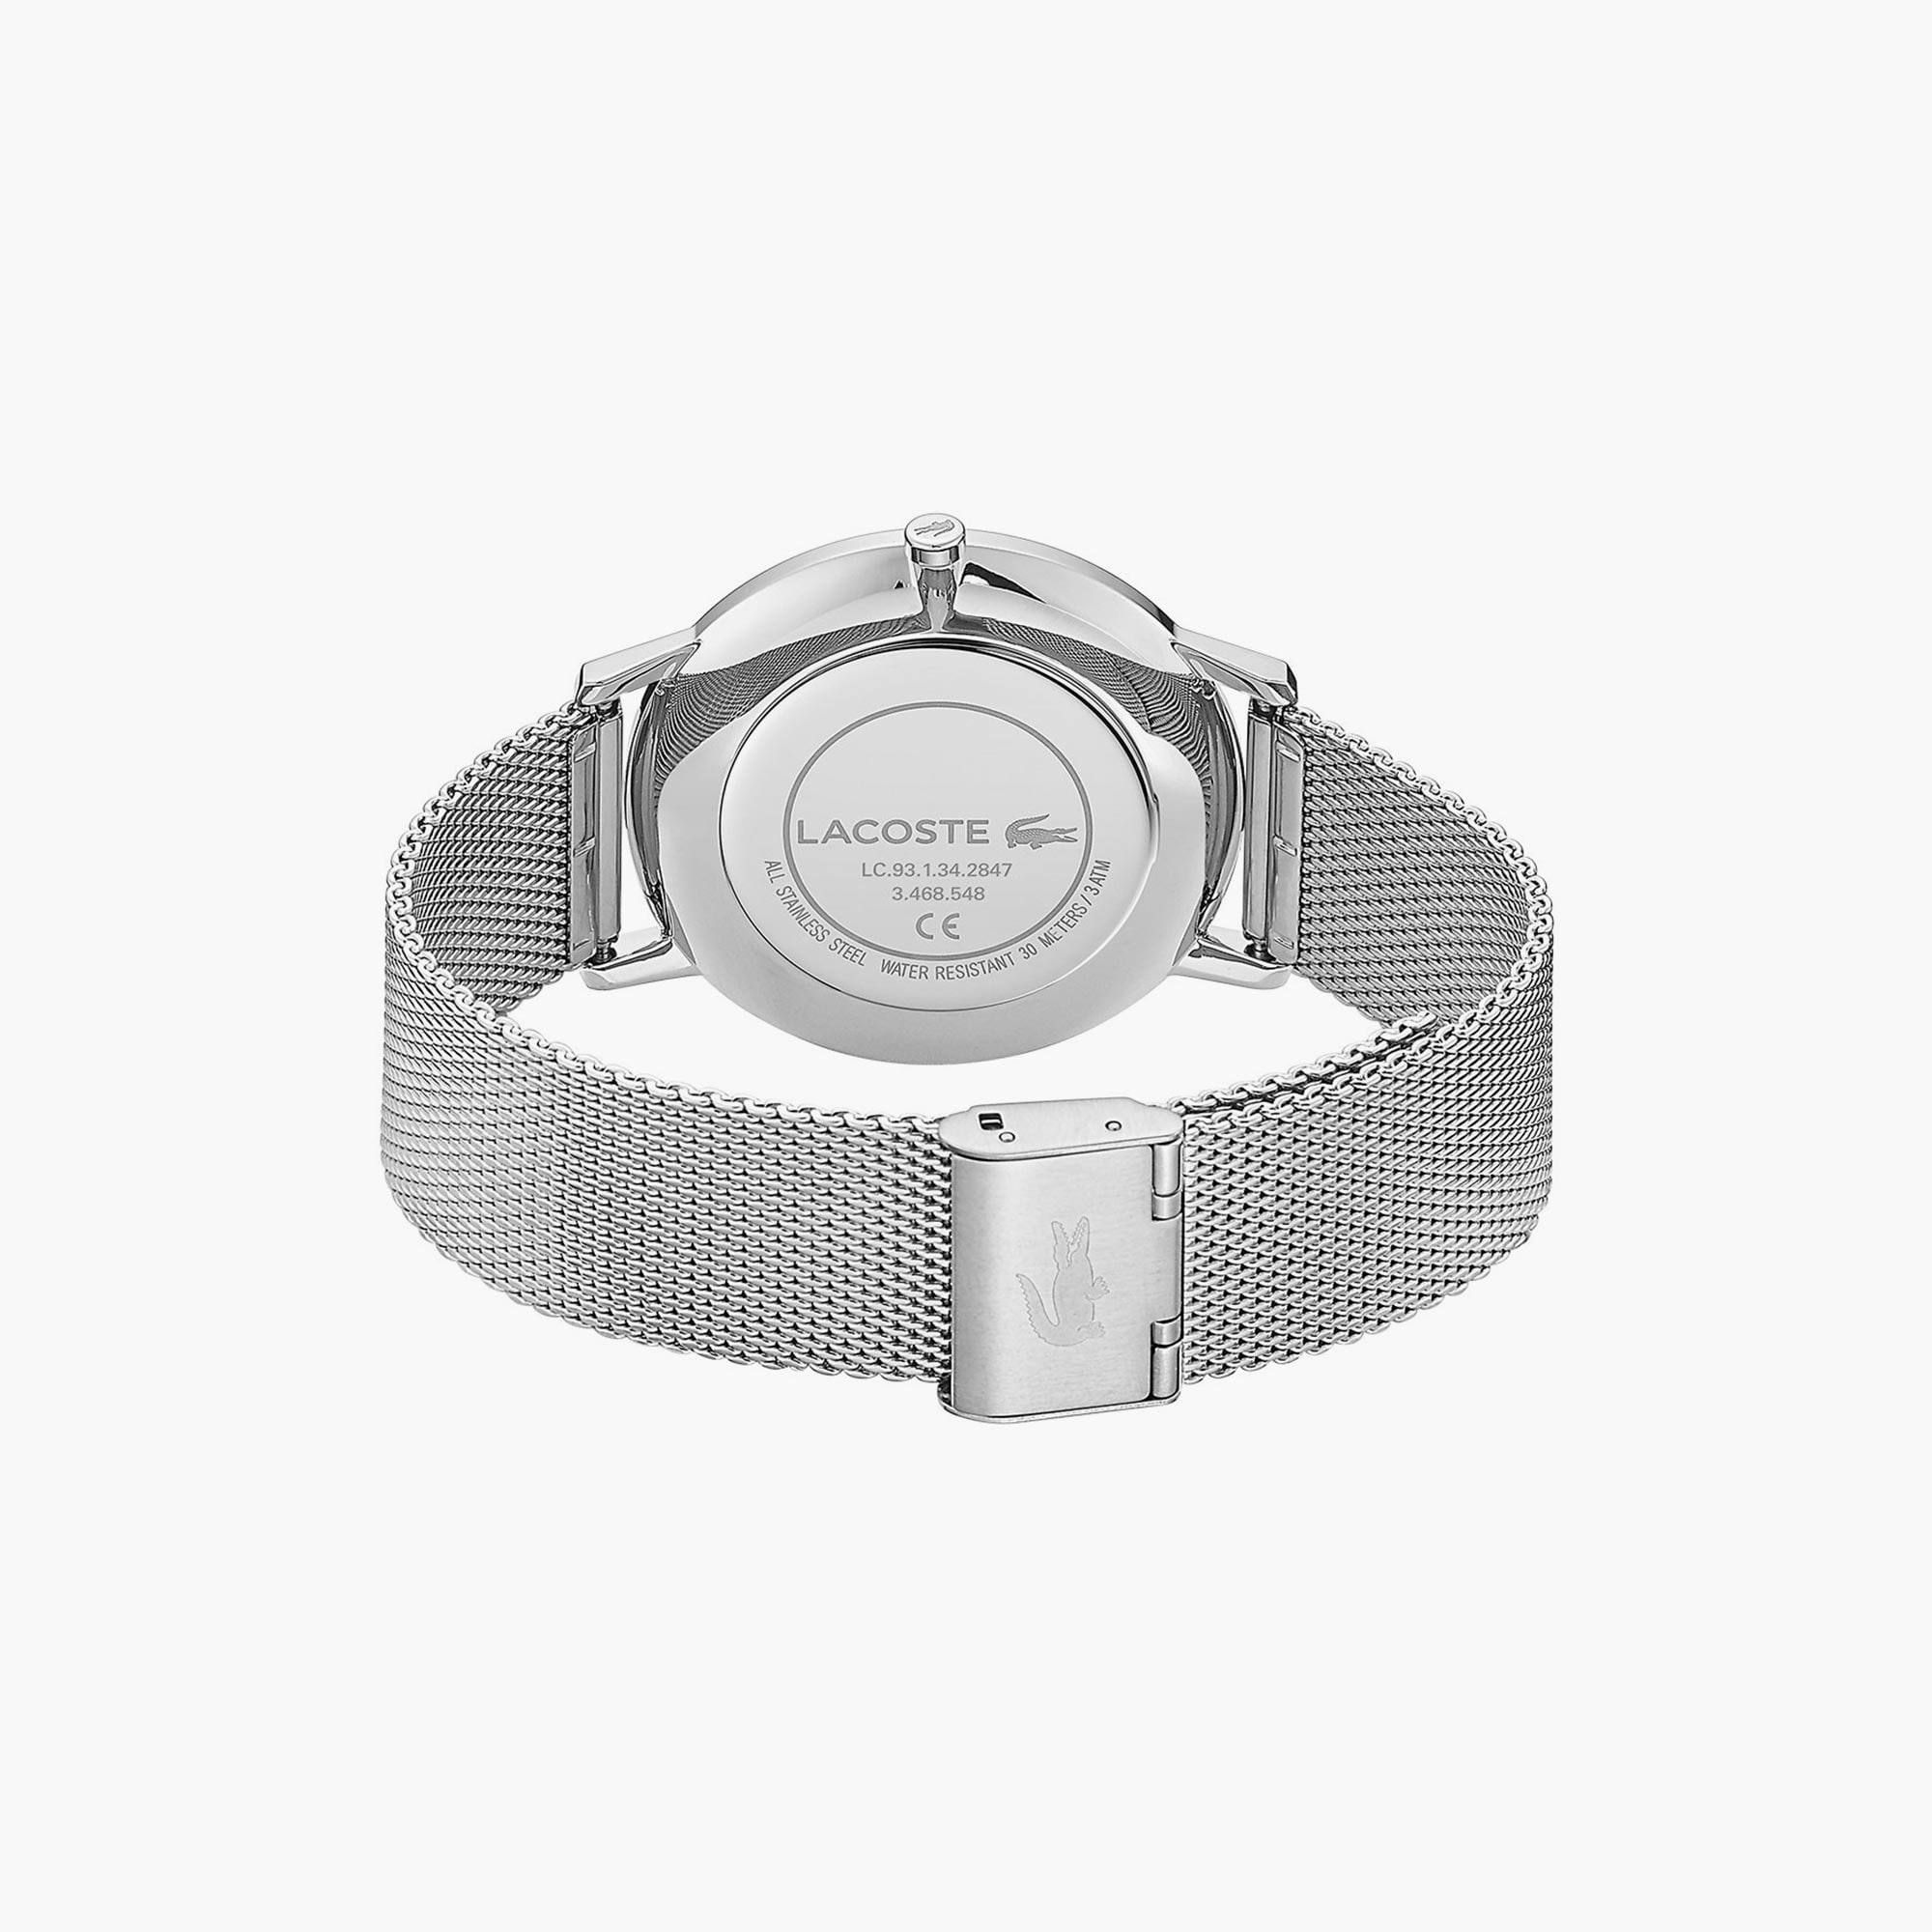 Gents Moon Watch with Stainless Steel Mesh Band Strap and Blue Dial